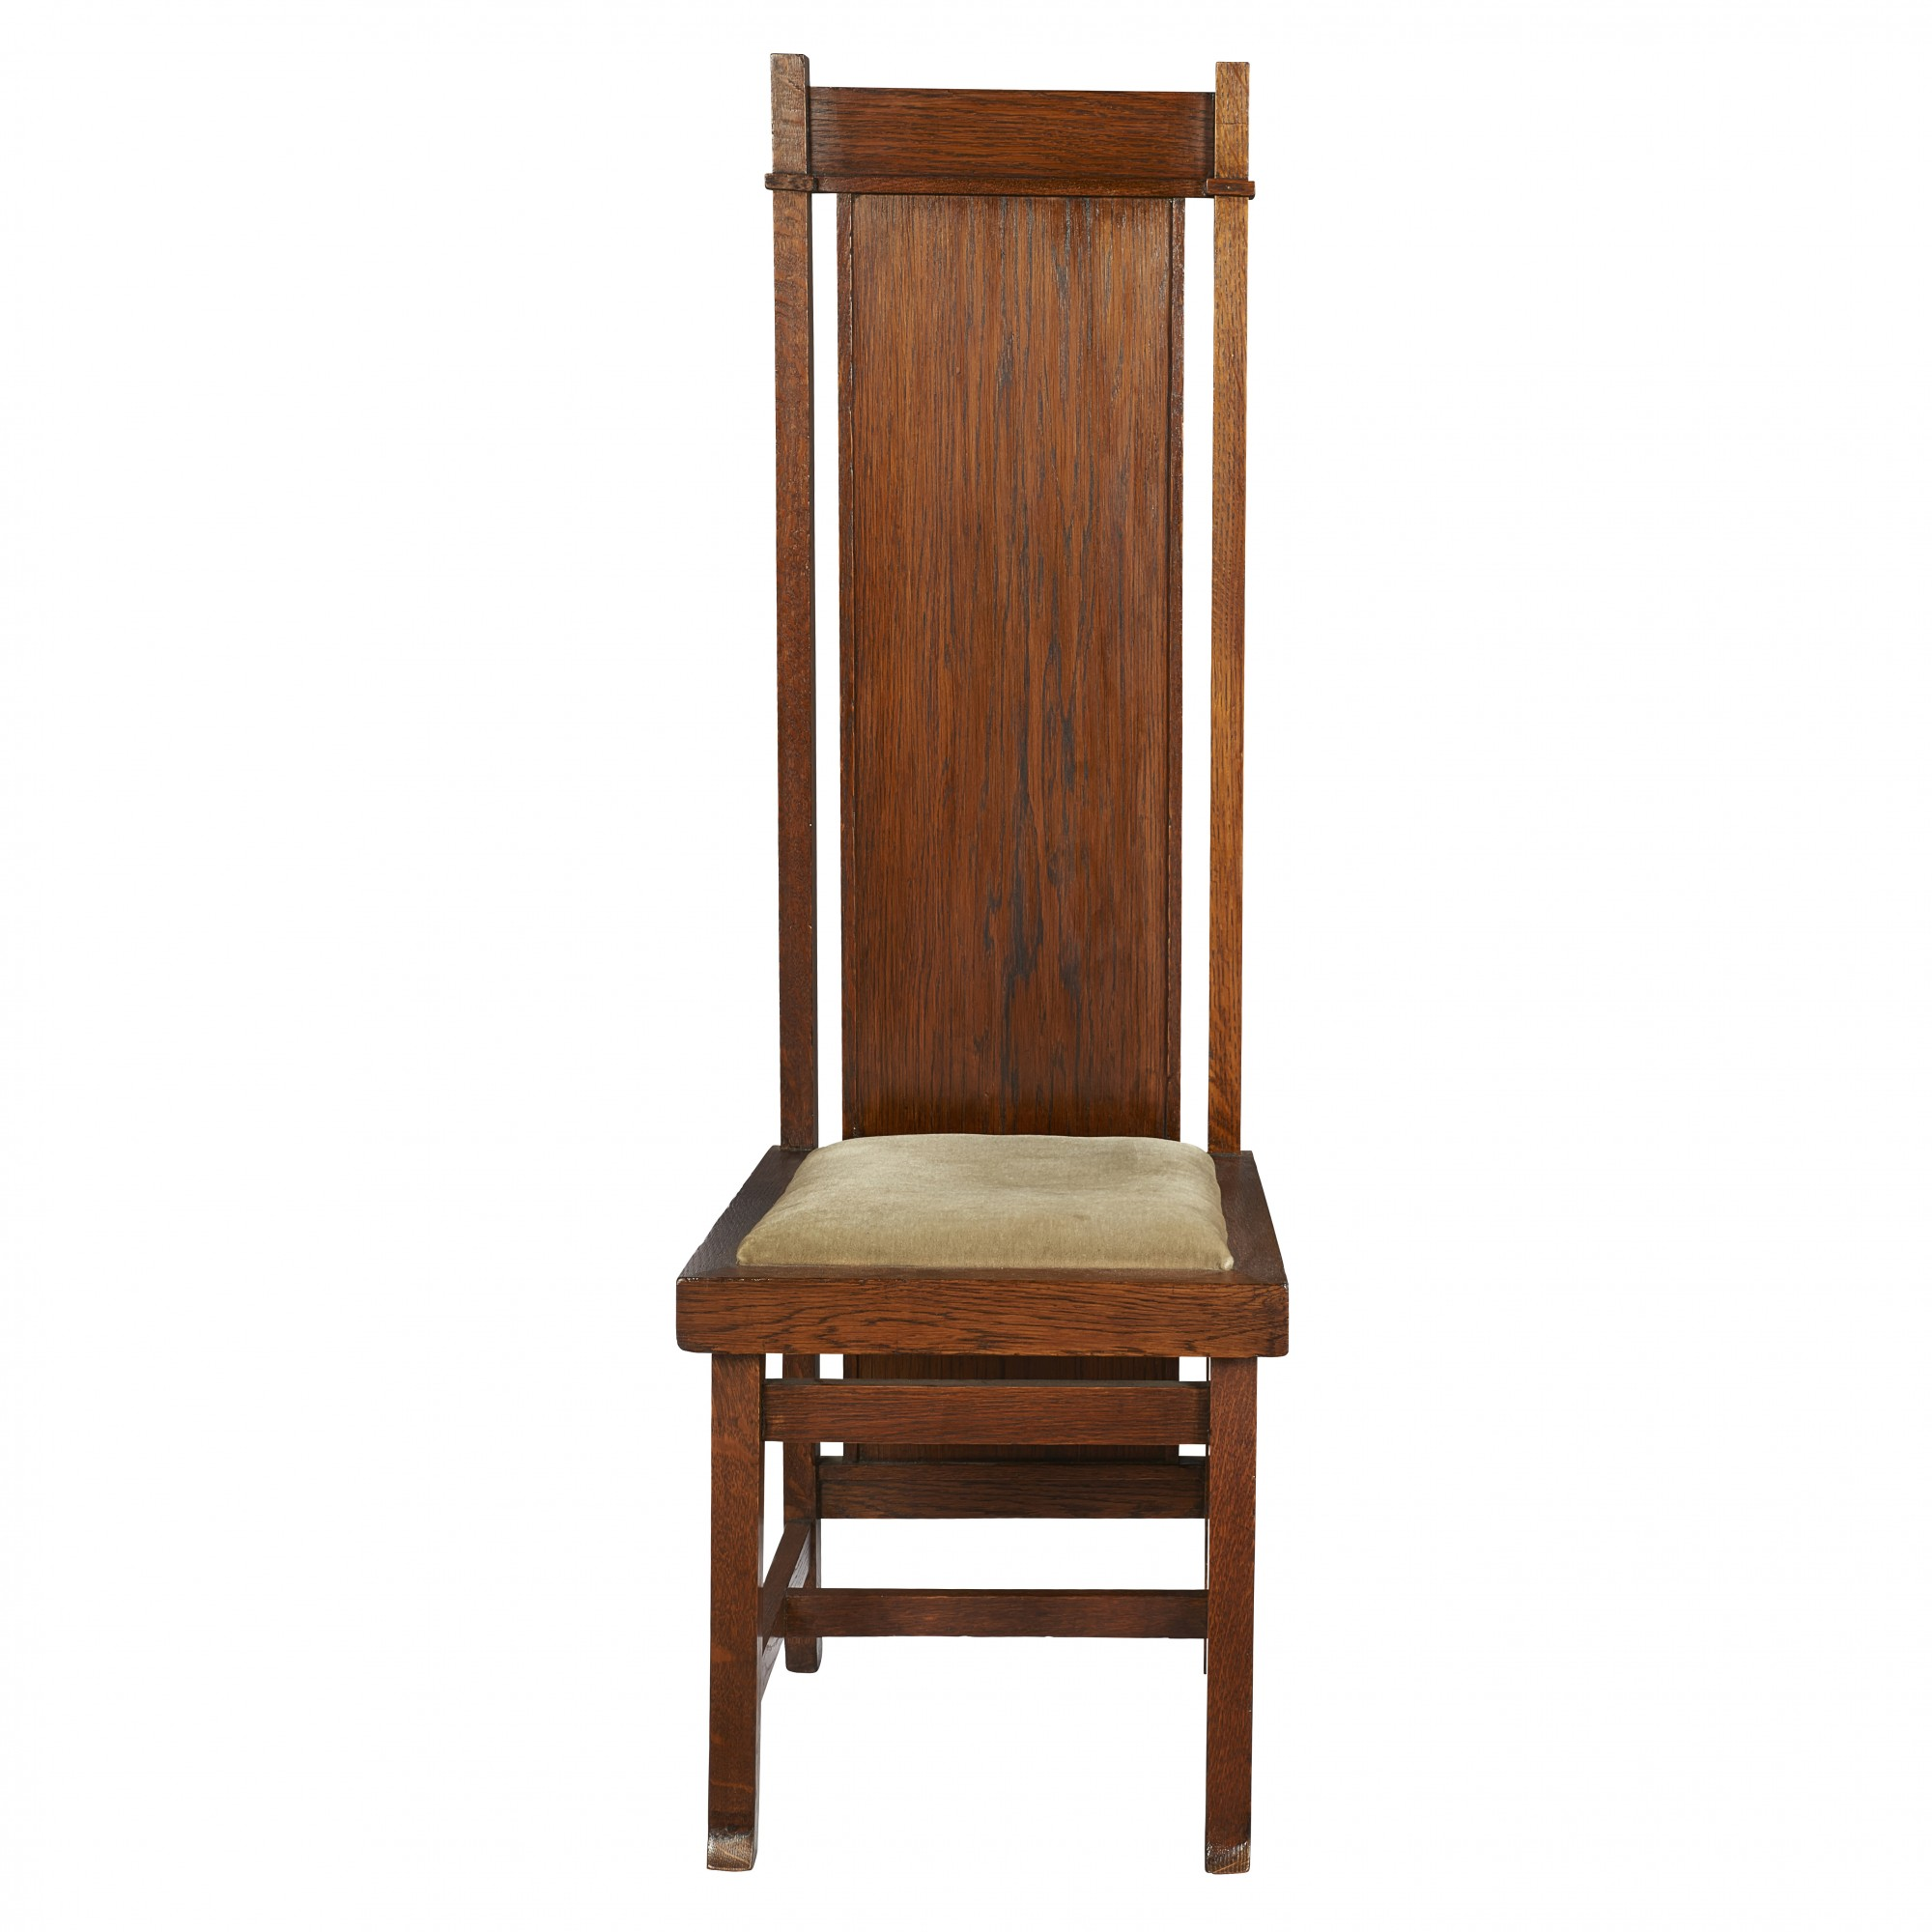 frank lloyd wright chairs antique folding rocking chair styles toomey co